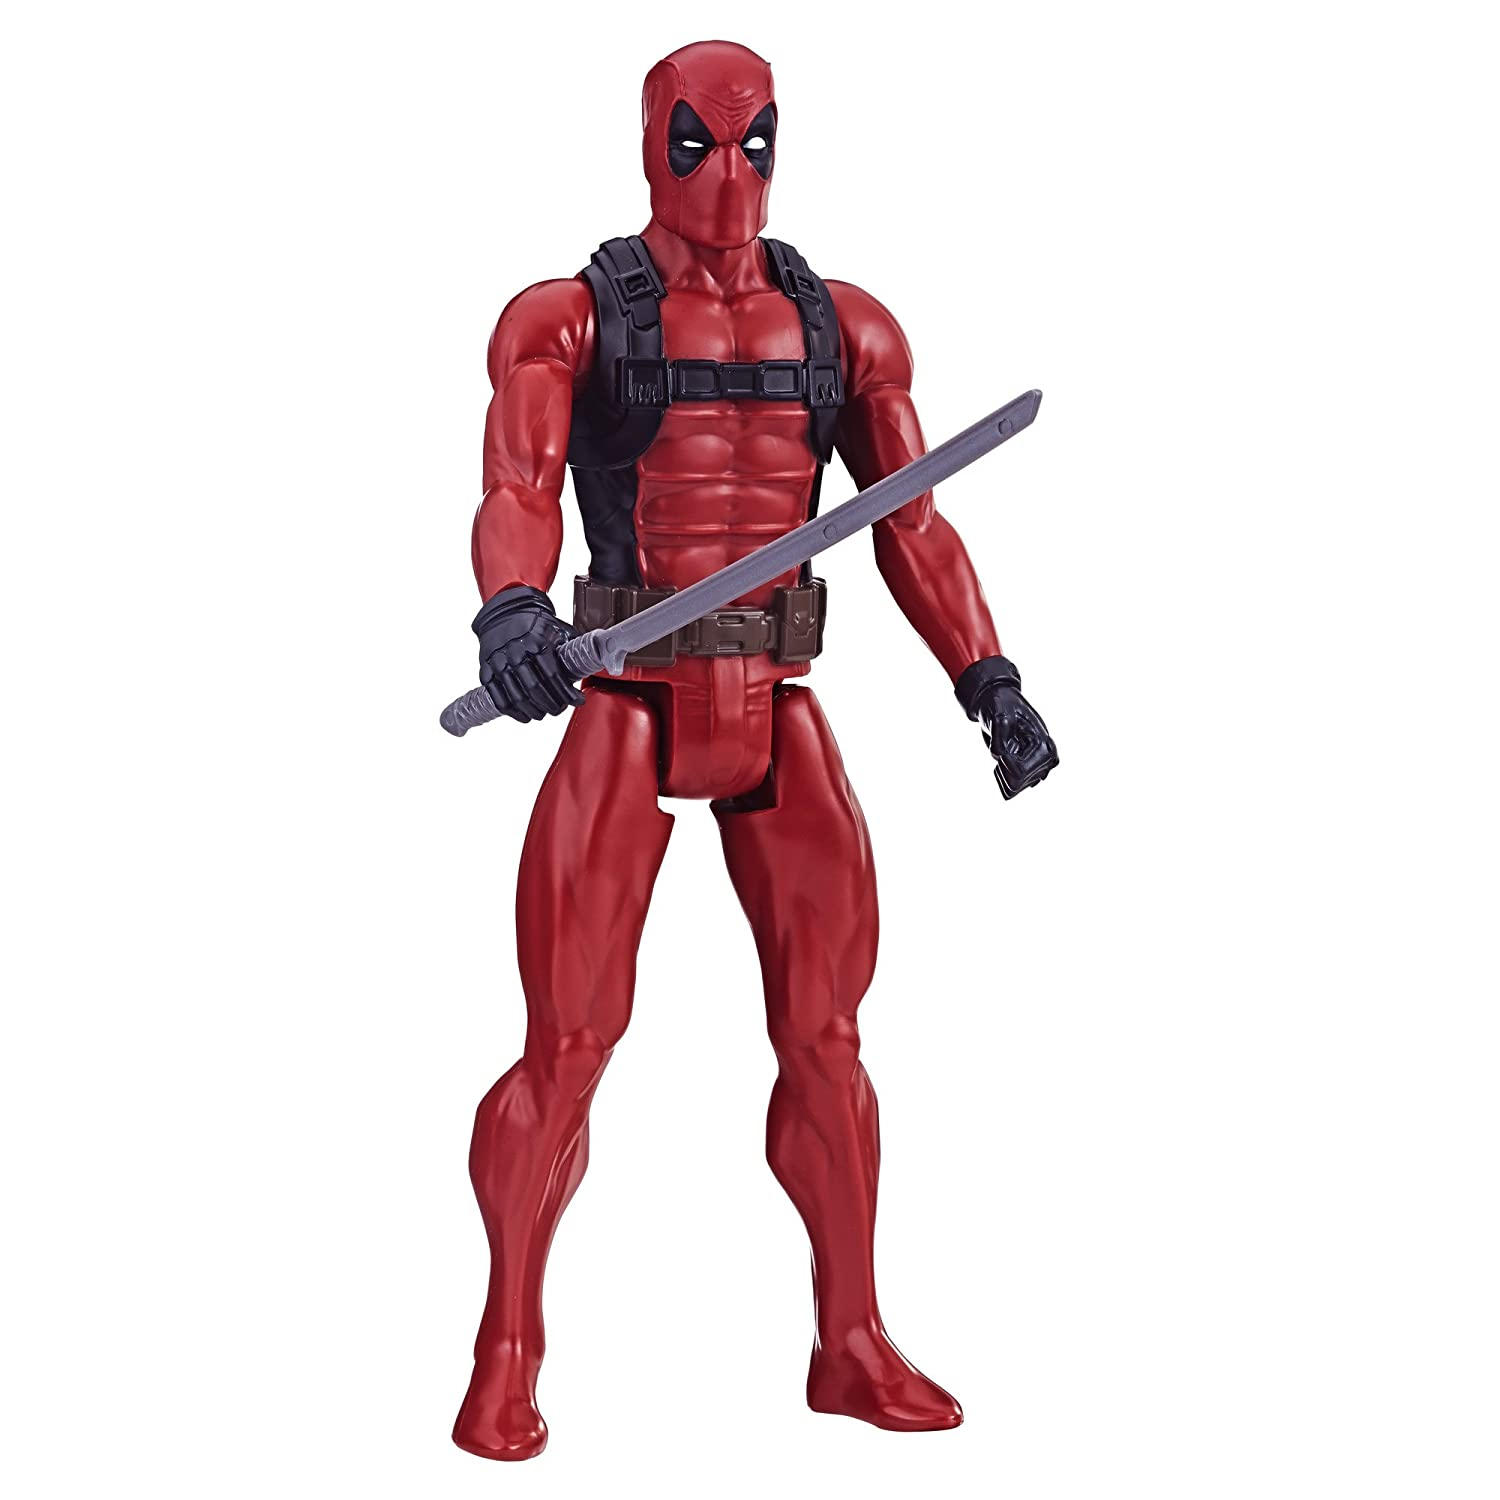 Marvel Deadpool 12 inch Deadpool Figure